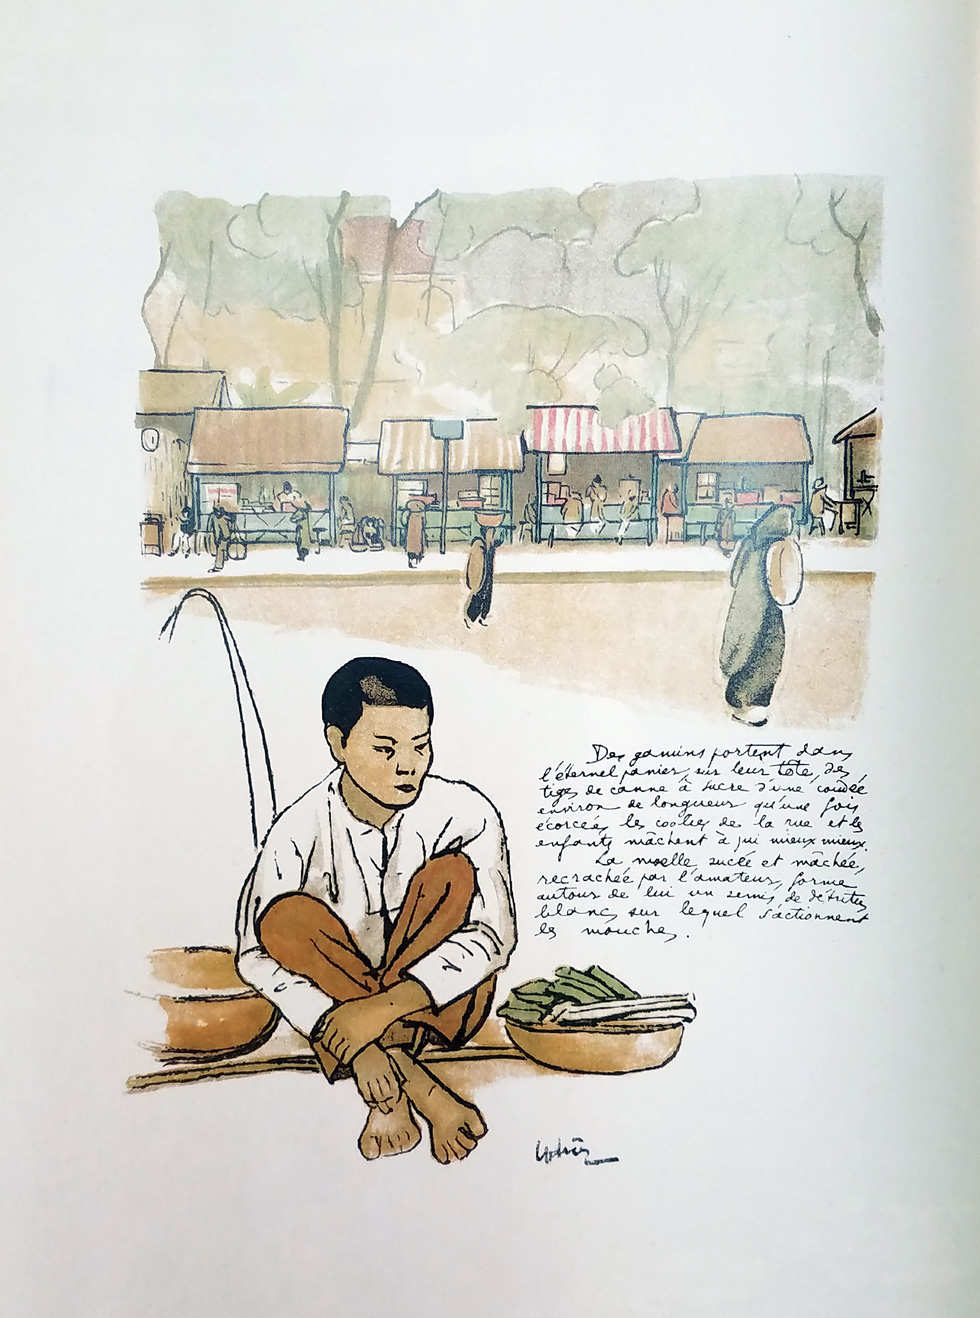 A boy peddling sugarcane cubes is portrayed in a drawing.